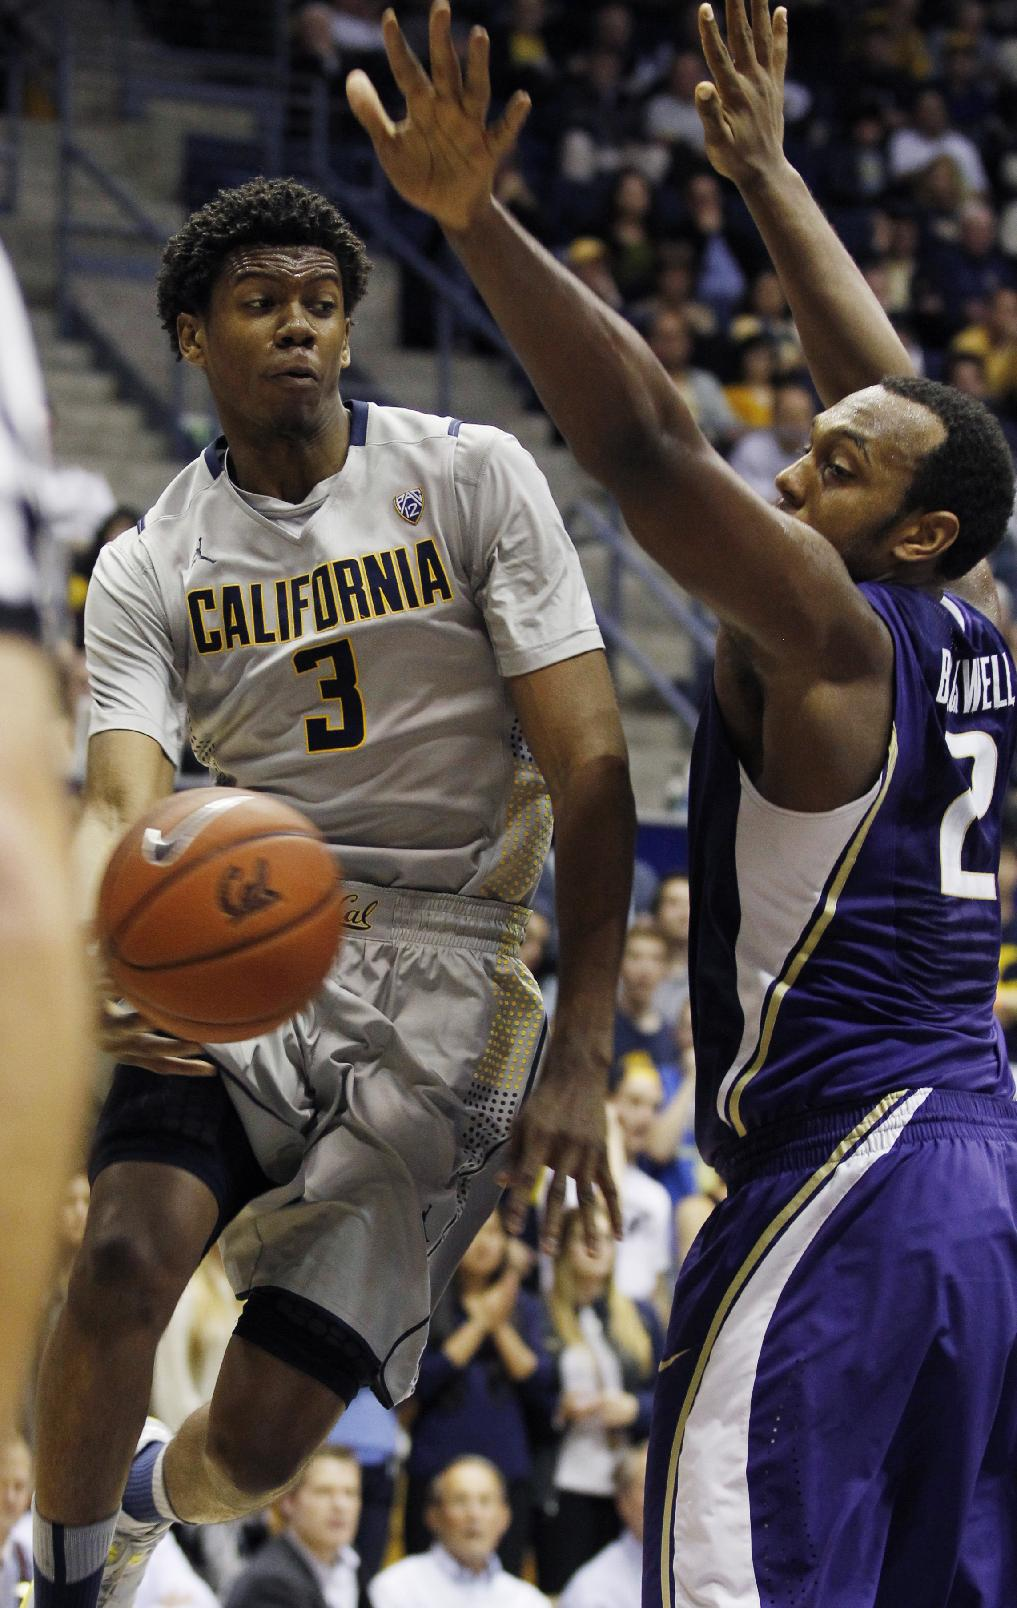 California's Tyrone Wallace (3) passes in front of Washington's Perris Blackwell during the second half of an NCAA college basketball game, Wednesday, Jan. 15, 2014, in Berkeley, Calif